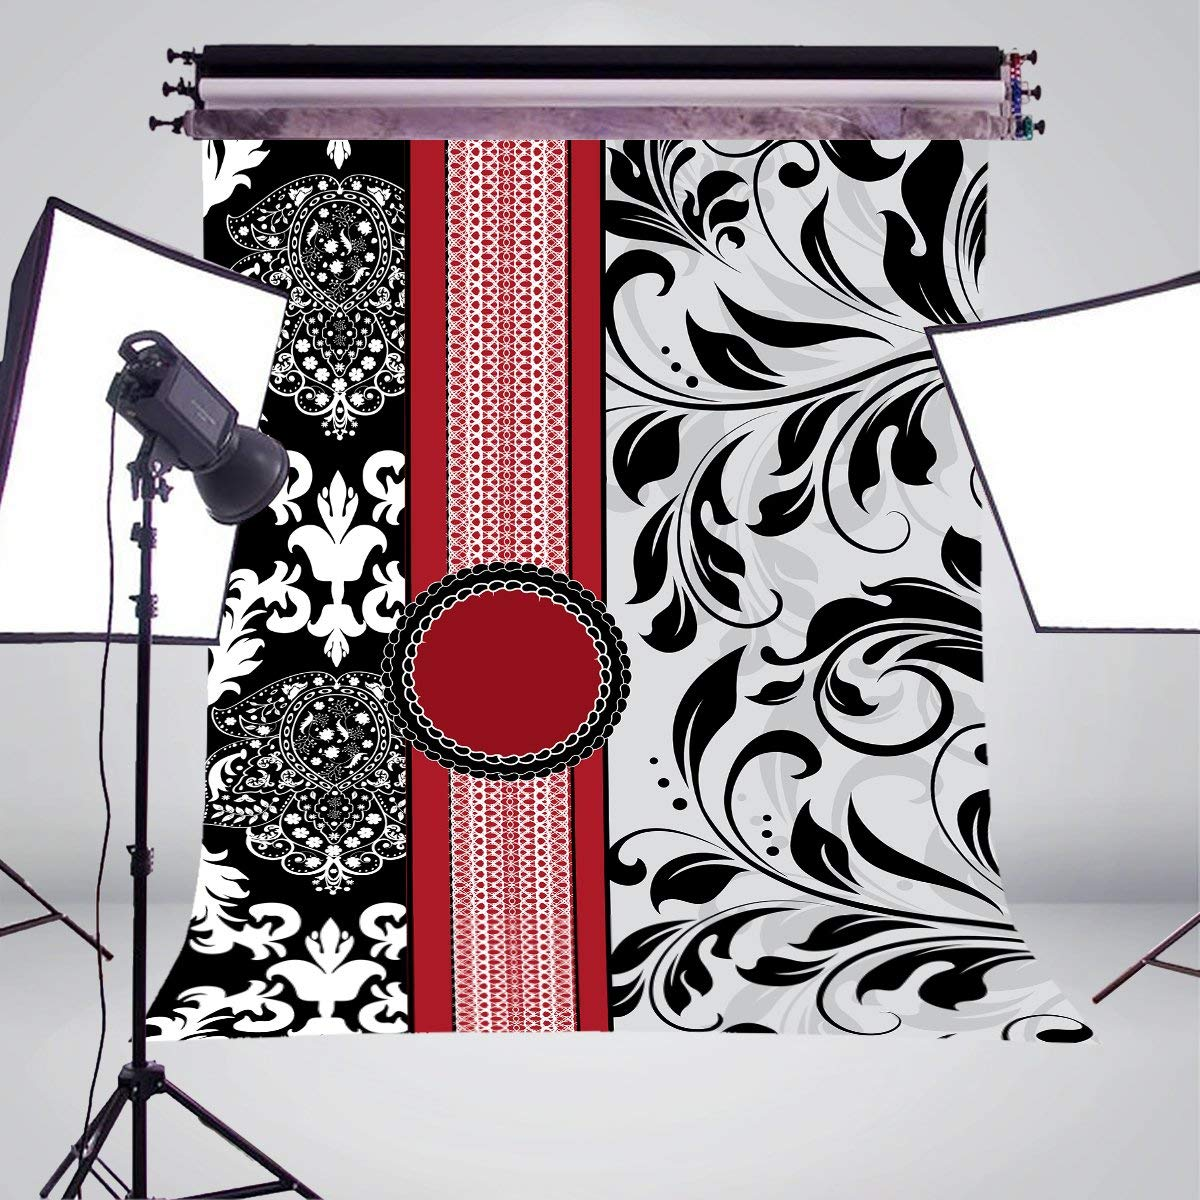 Image 3 - Classic European Pattern Photography Backdrop Flower Shape photo studio backgound 5x7ft Classical mural wall backdrops-in Photo Studio Accessories from Consumer Electronics